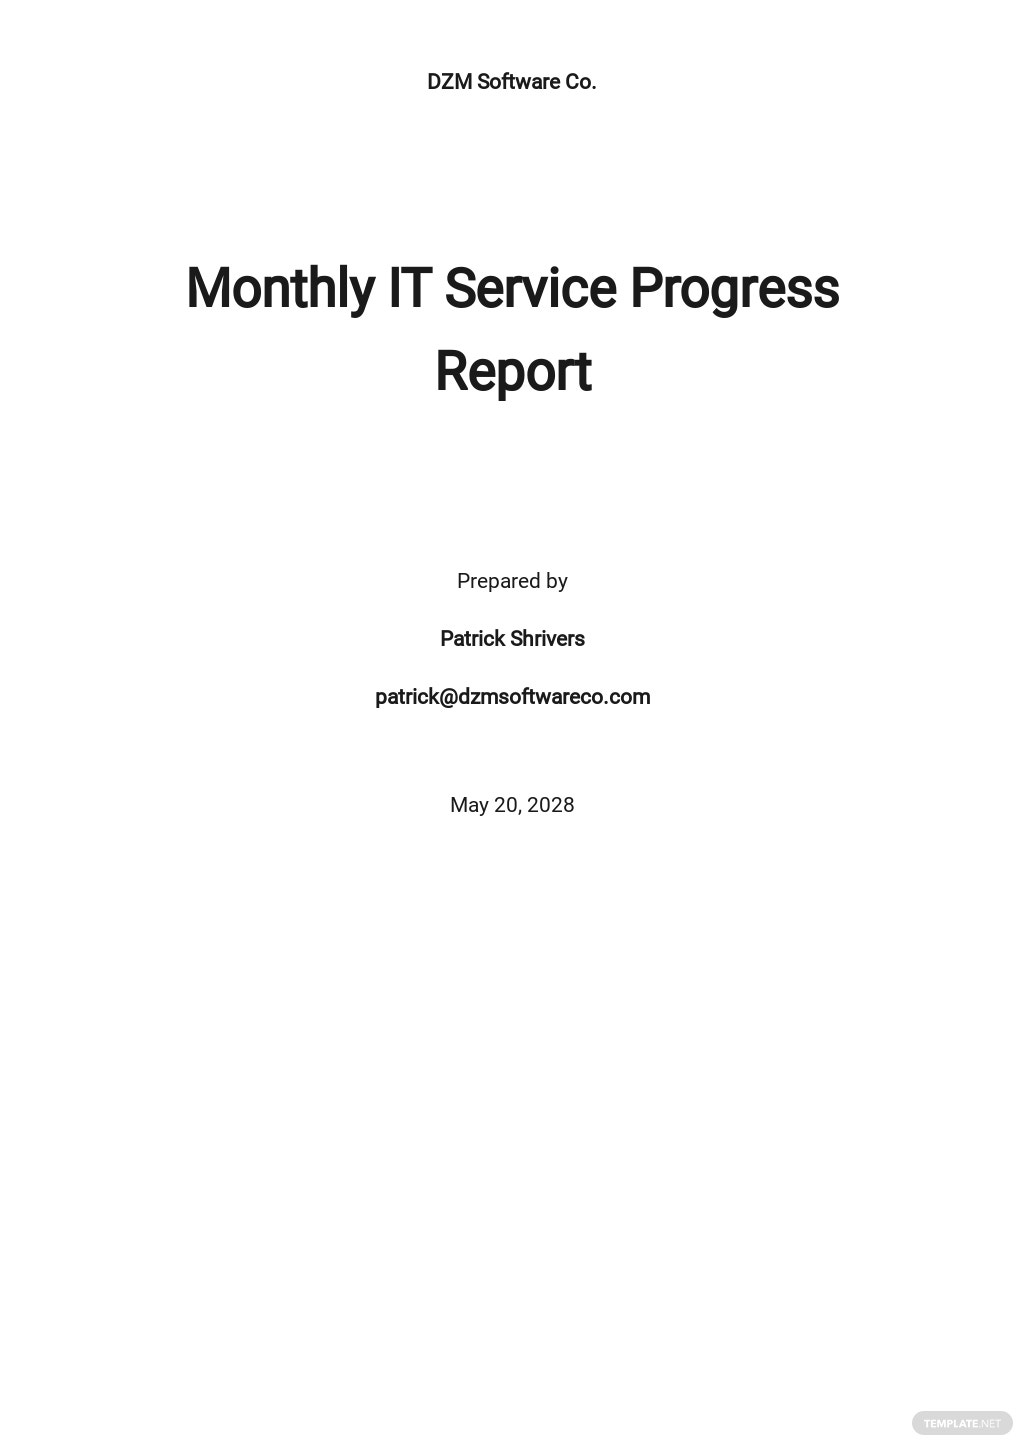 Monthly IT Service Report Template